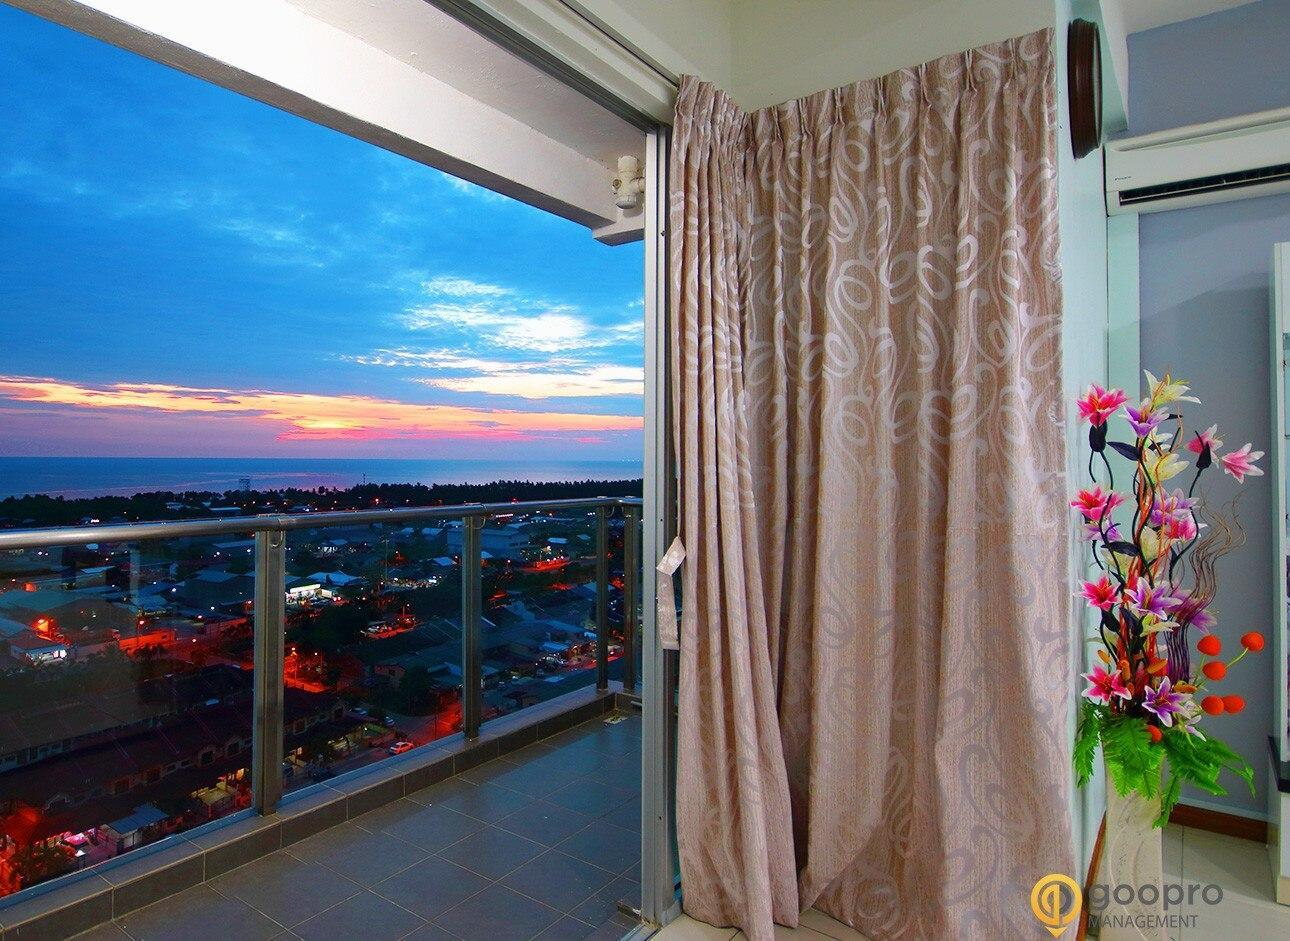 Best Deal In Sekinchan With Sea And PaddyField View